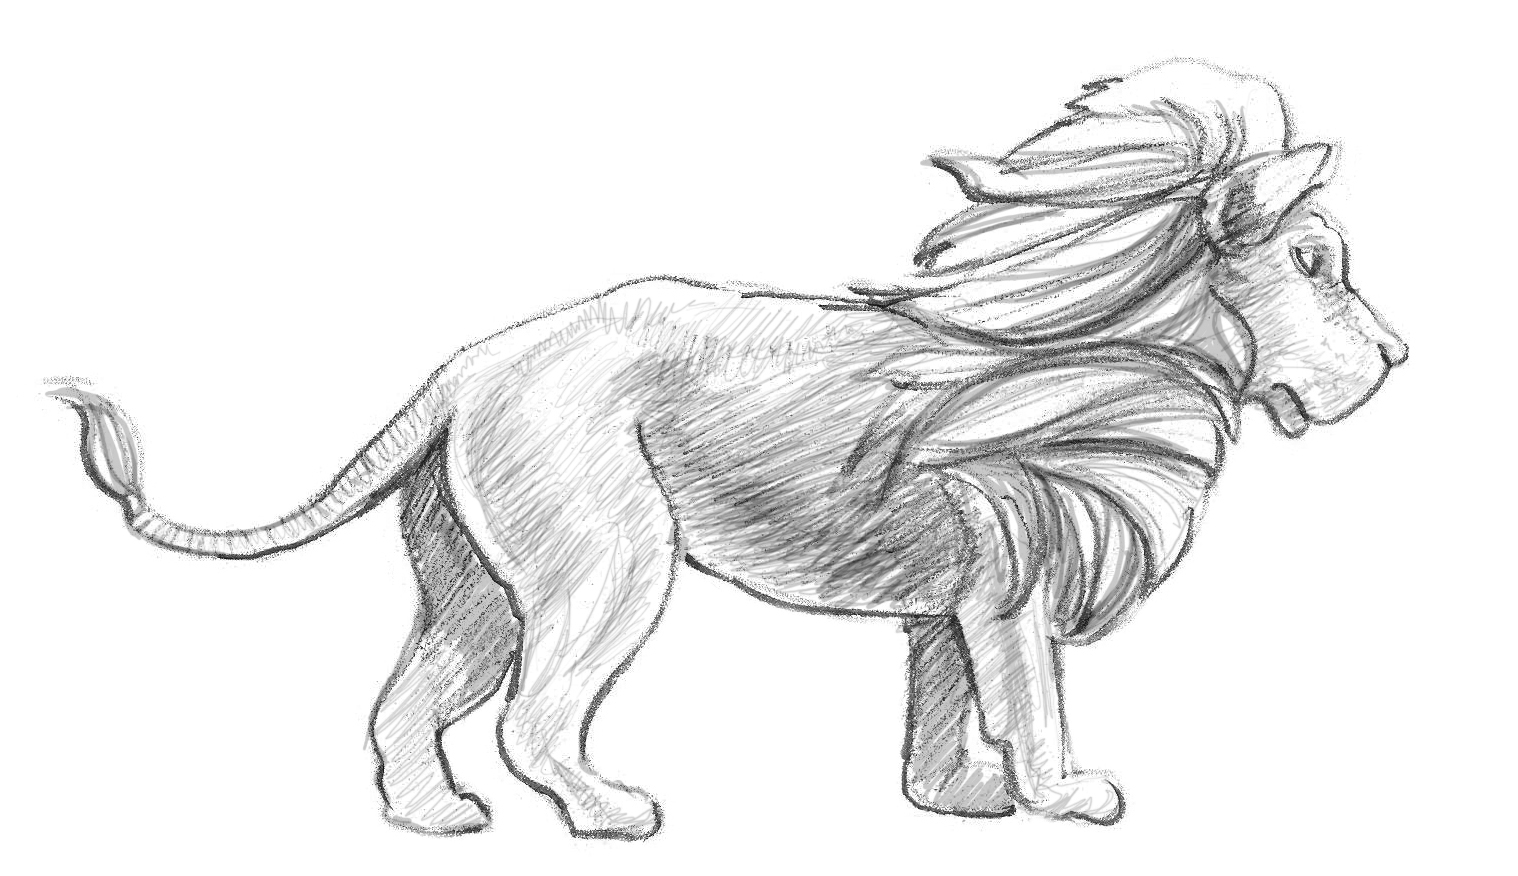 Drawn lion By To Here's Step a